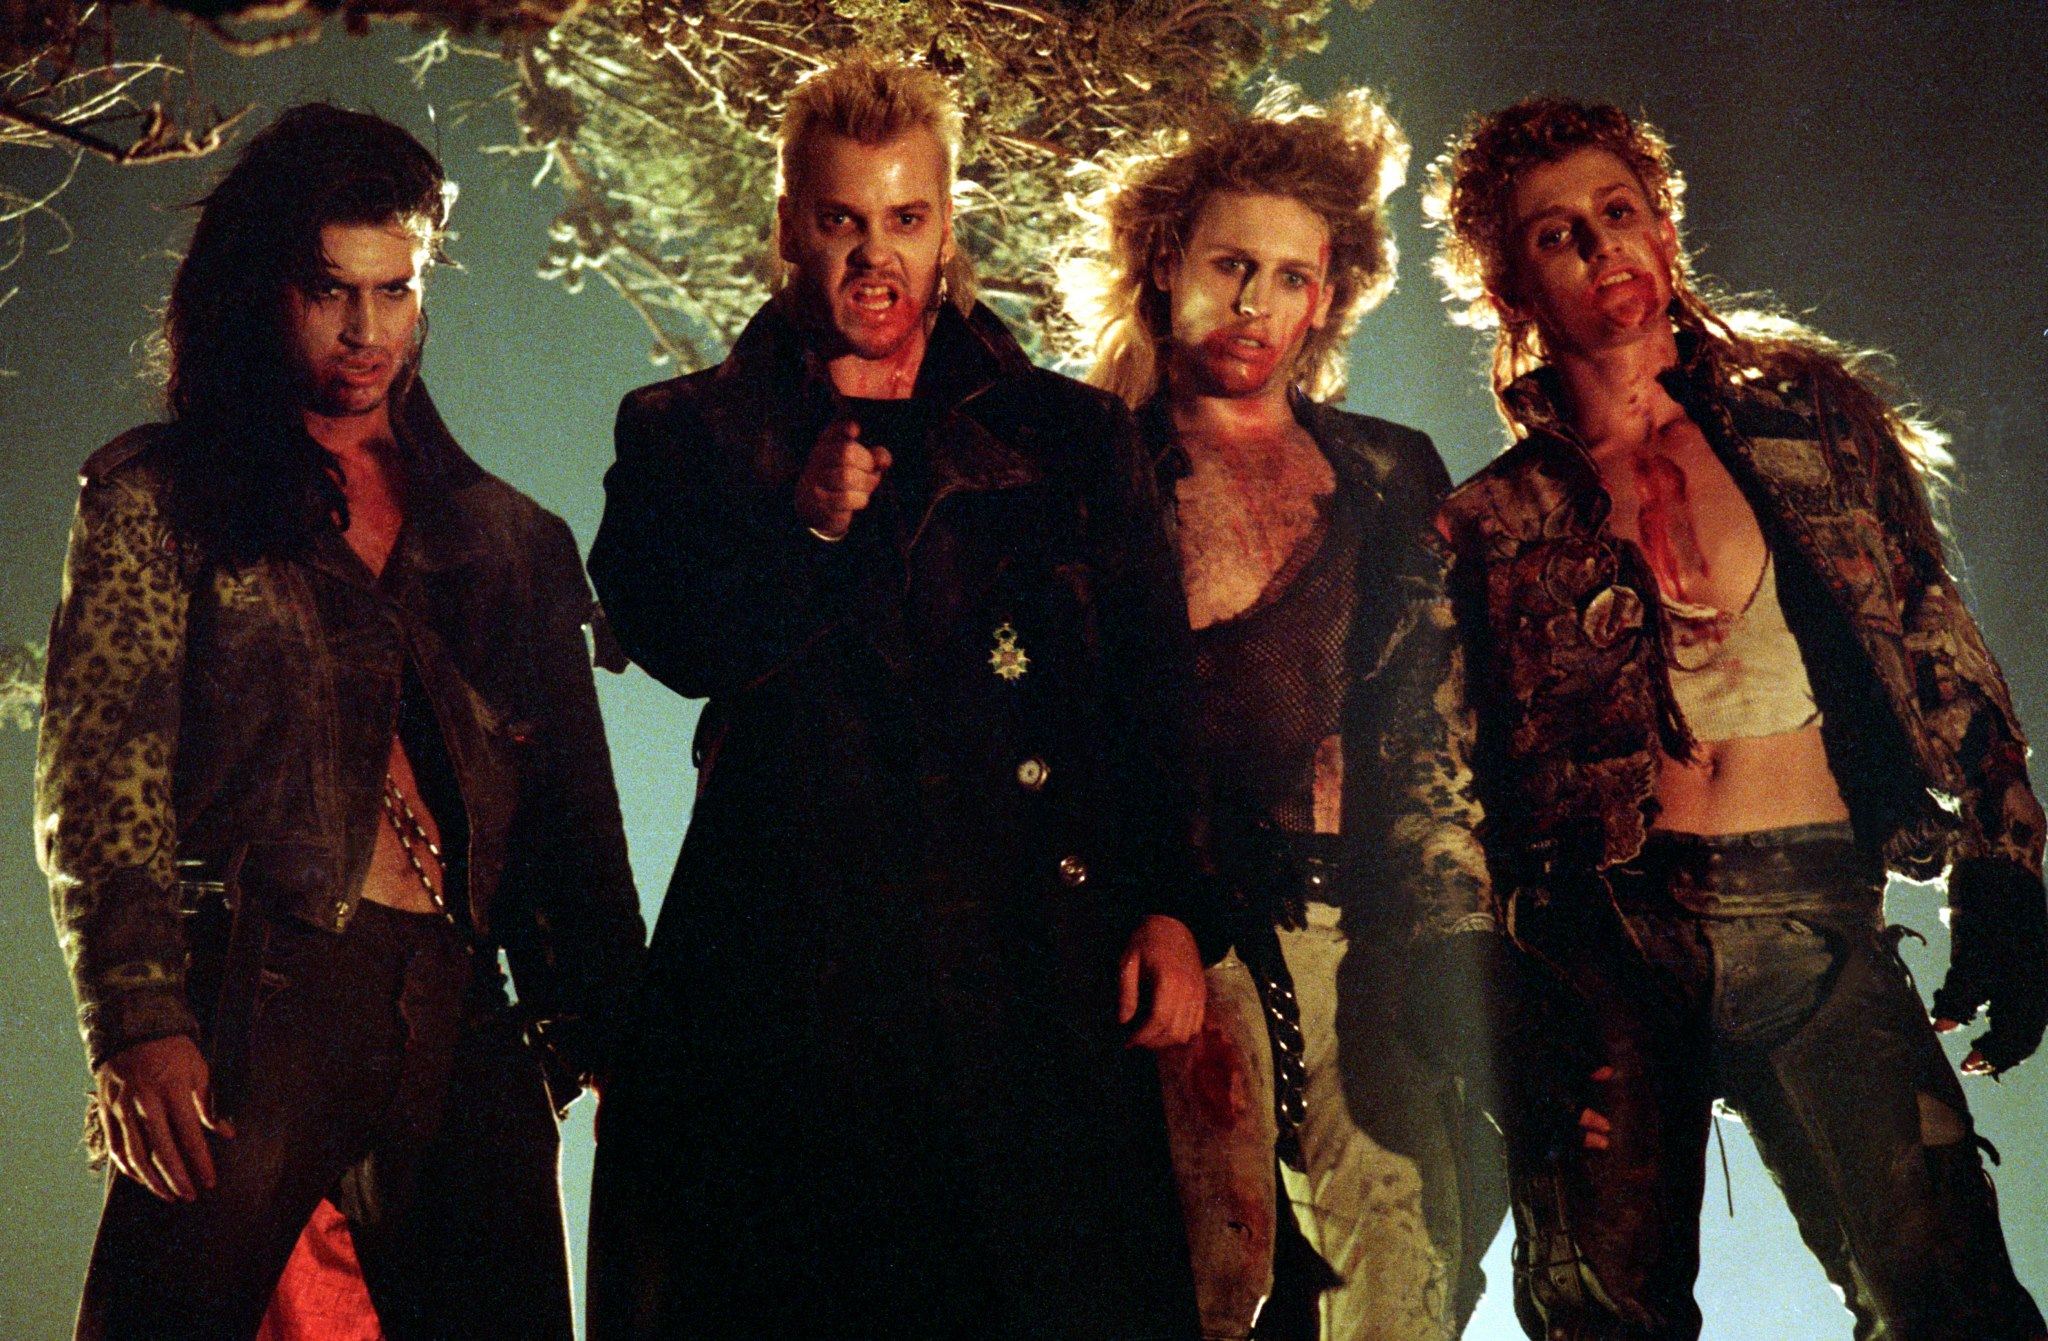 The Lost Boys HD Wallpaper Background Image 2048x1341 ID 2048x1341